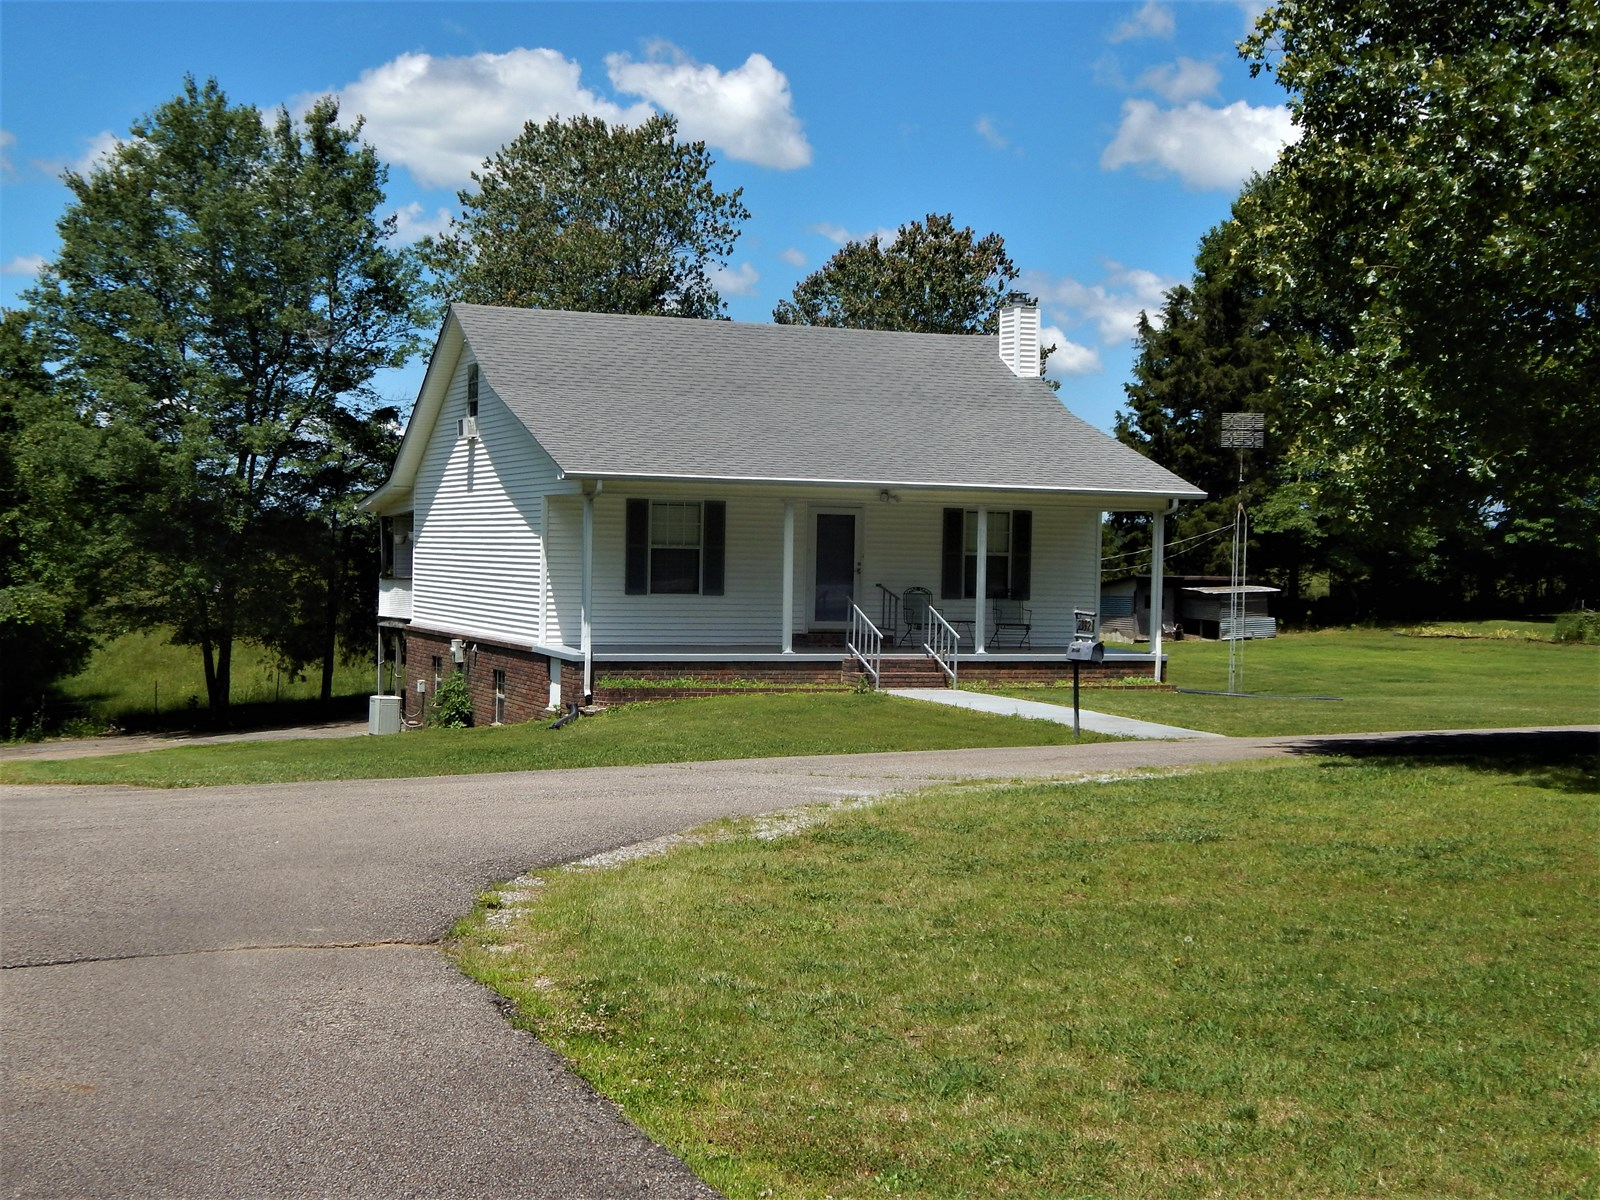 TN COUNTRY HOME, 3 BED, 2 BATH ON 1.06 ACRES!